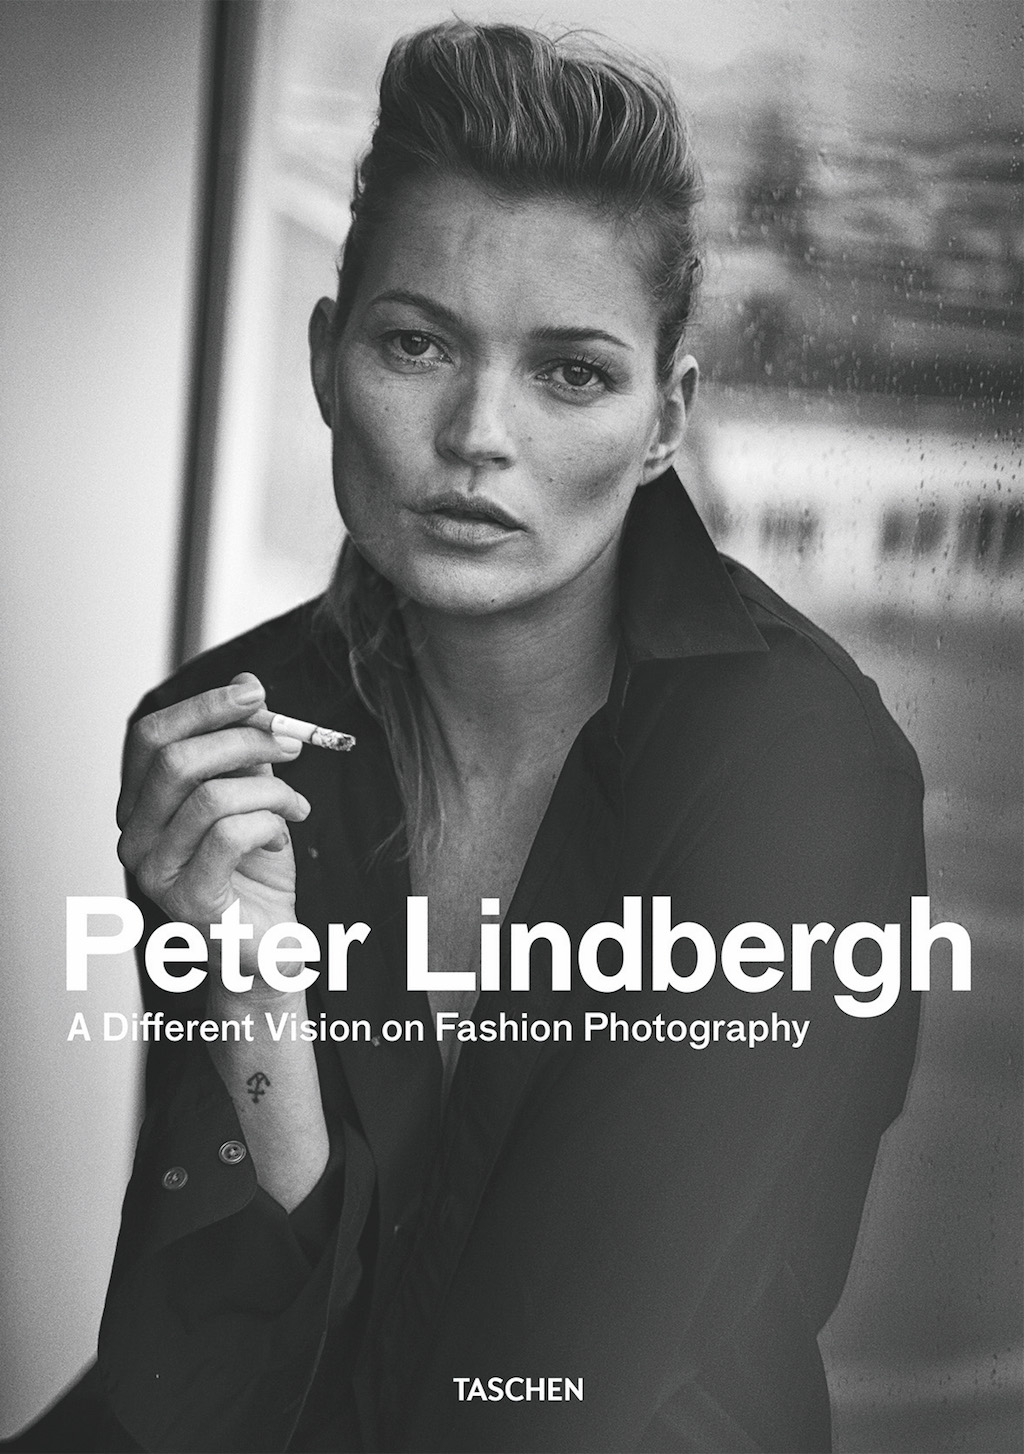 frontcover_fo_lindberg_contemp_fashion_05793_V4.indd